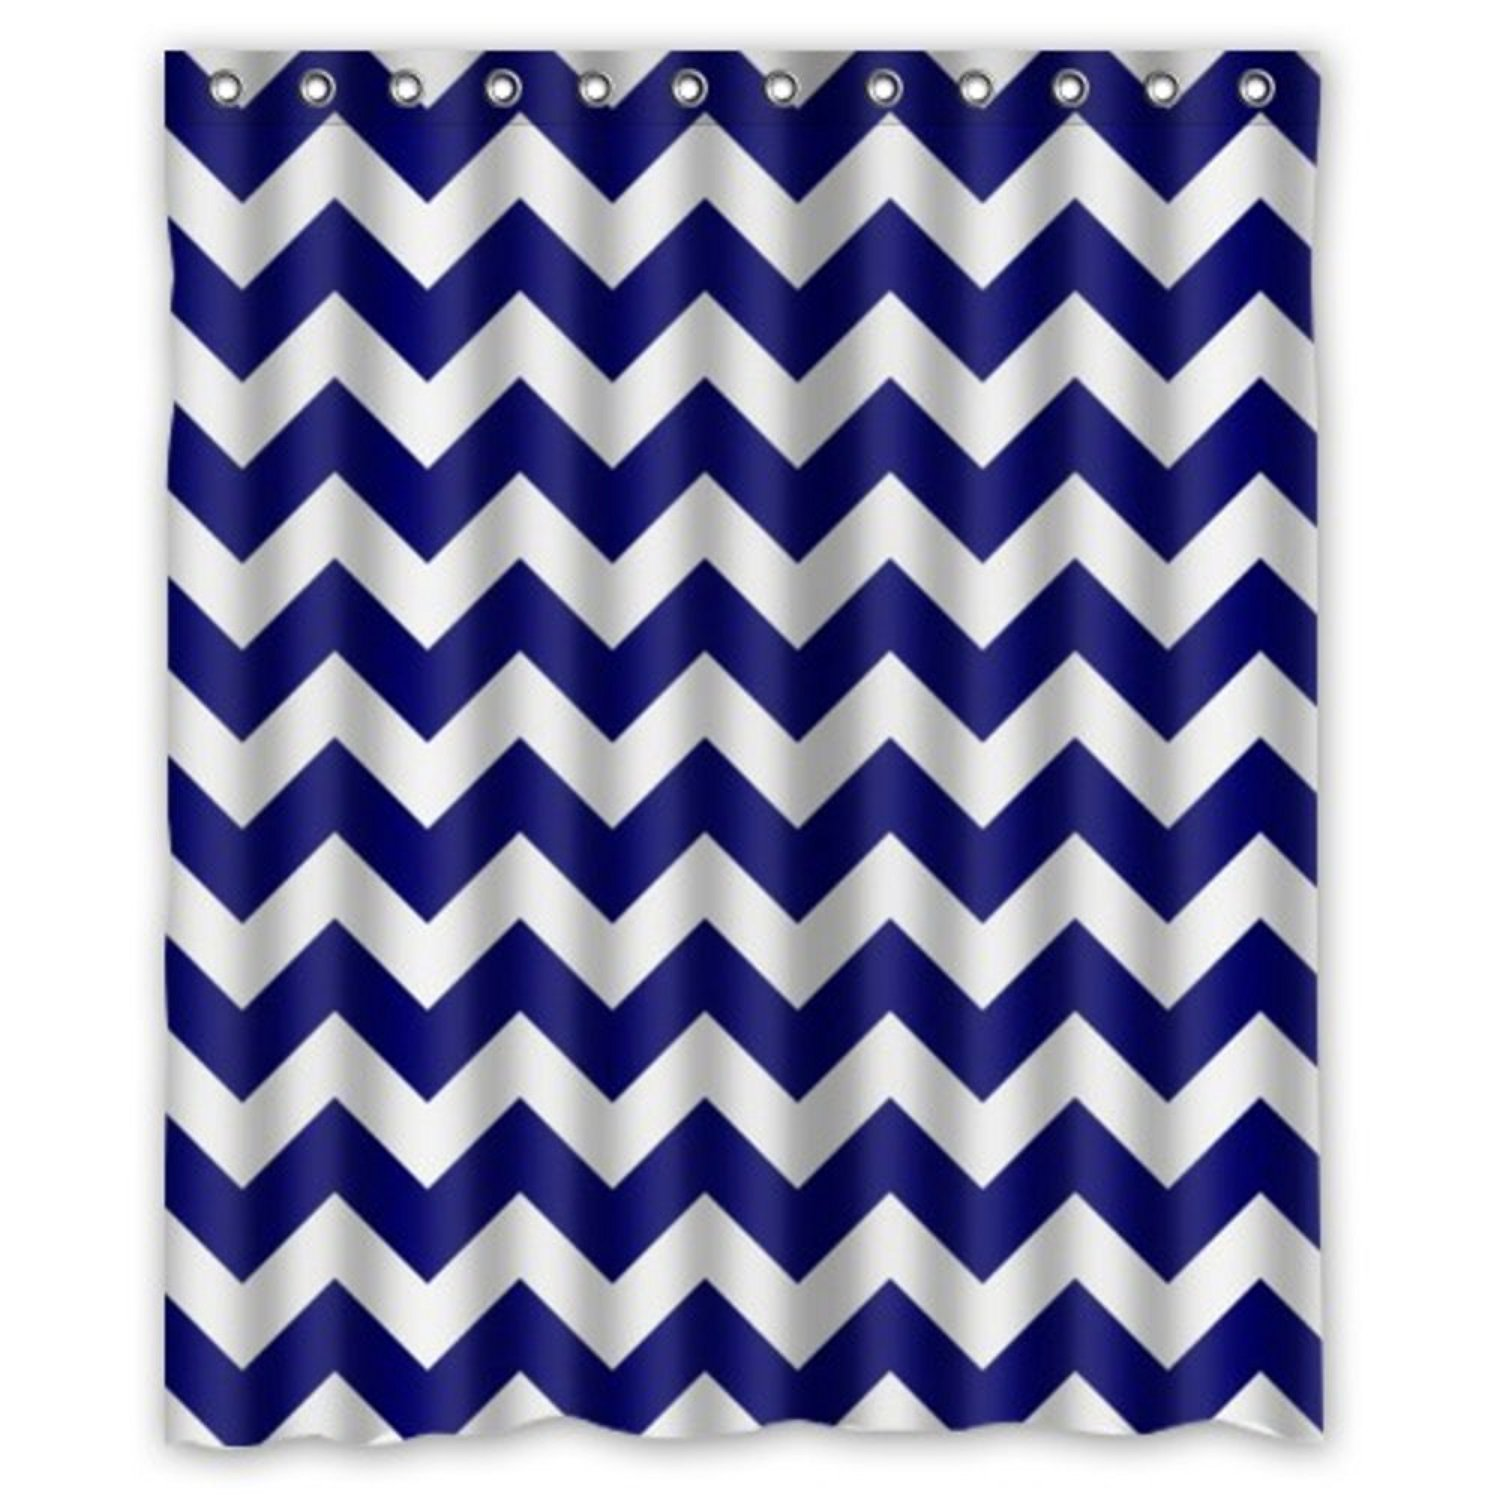 Personalized Bathroom Decor Chevron Pattern Blue Pattern Shower Curtain waterproof Polyester Fabric Shower Curtain Super